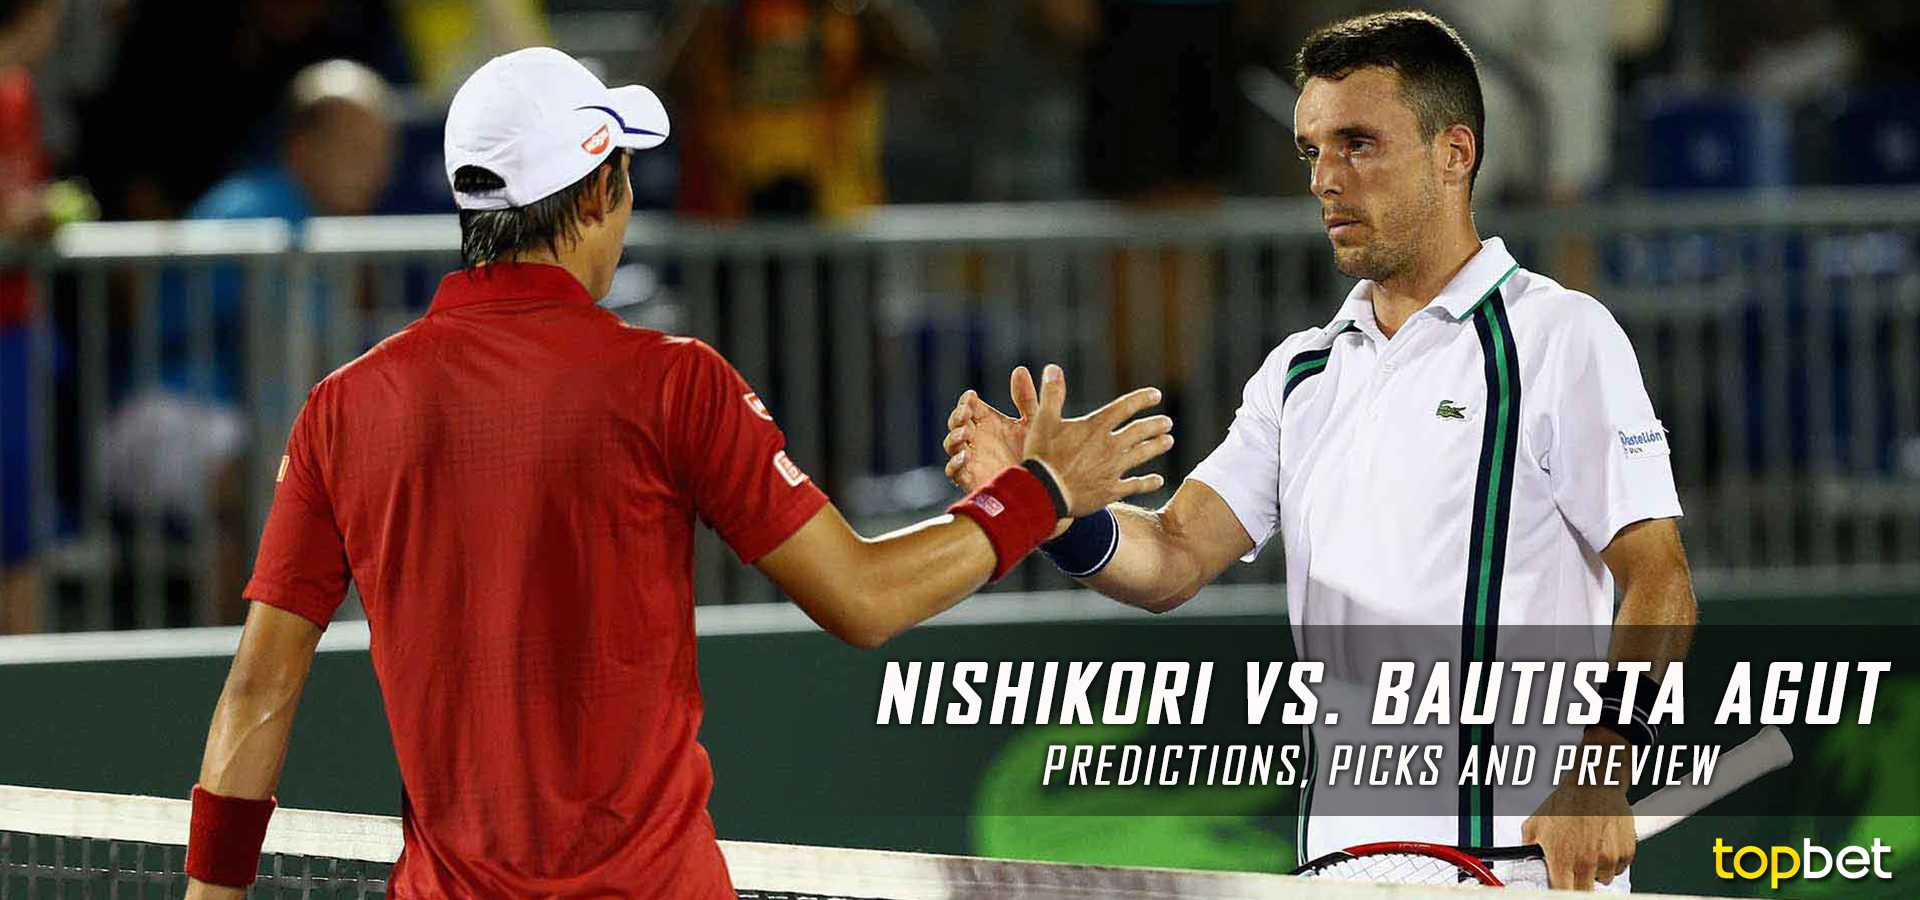 Nishikori Vs Bautista Agut 2017 Wimbledon Predictions Picks And Preview